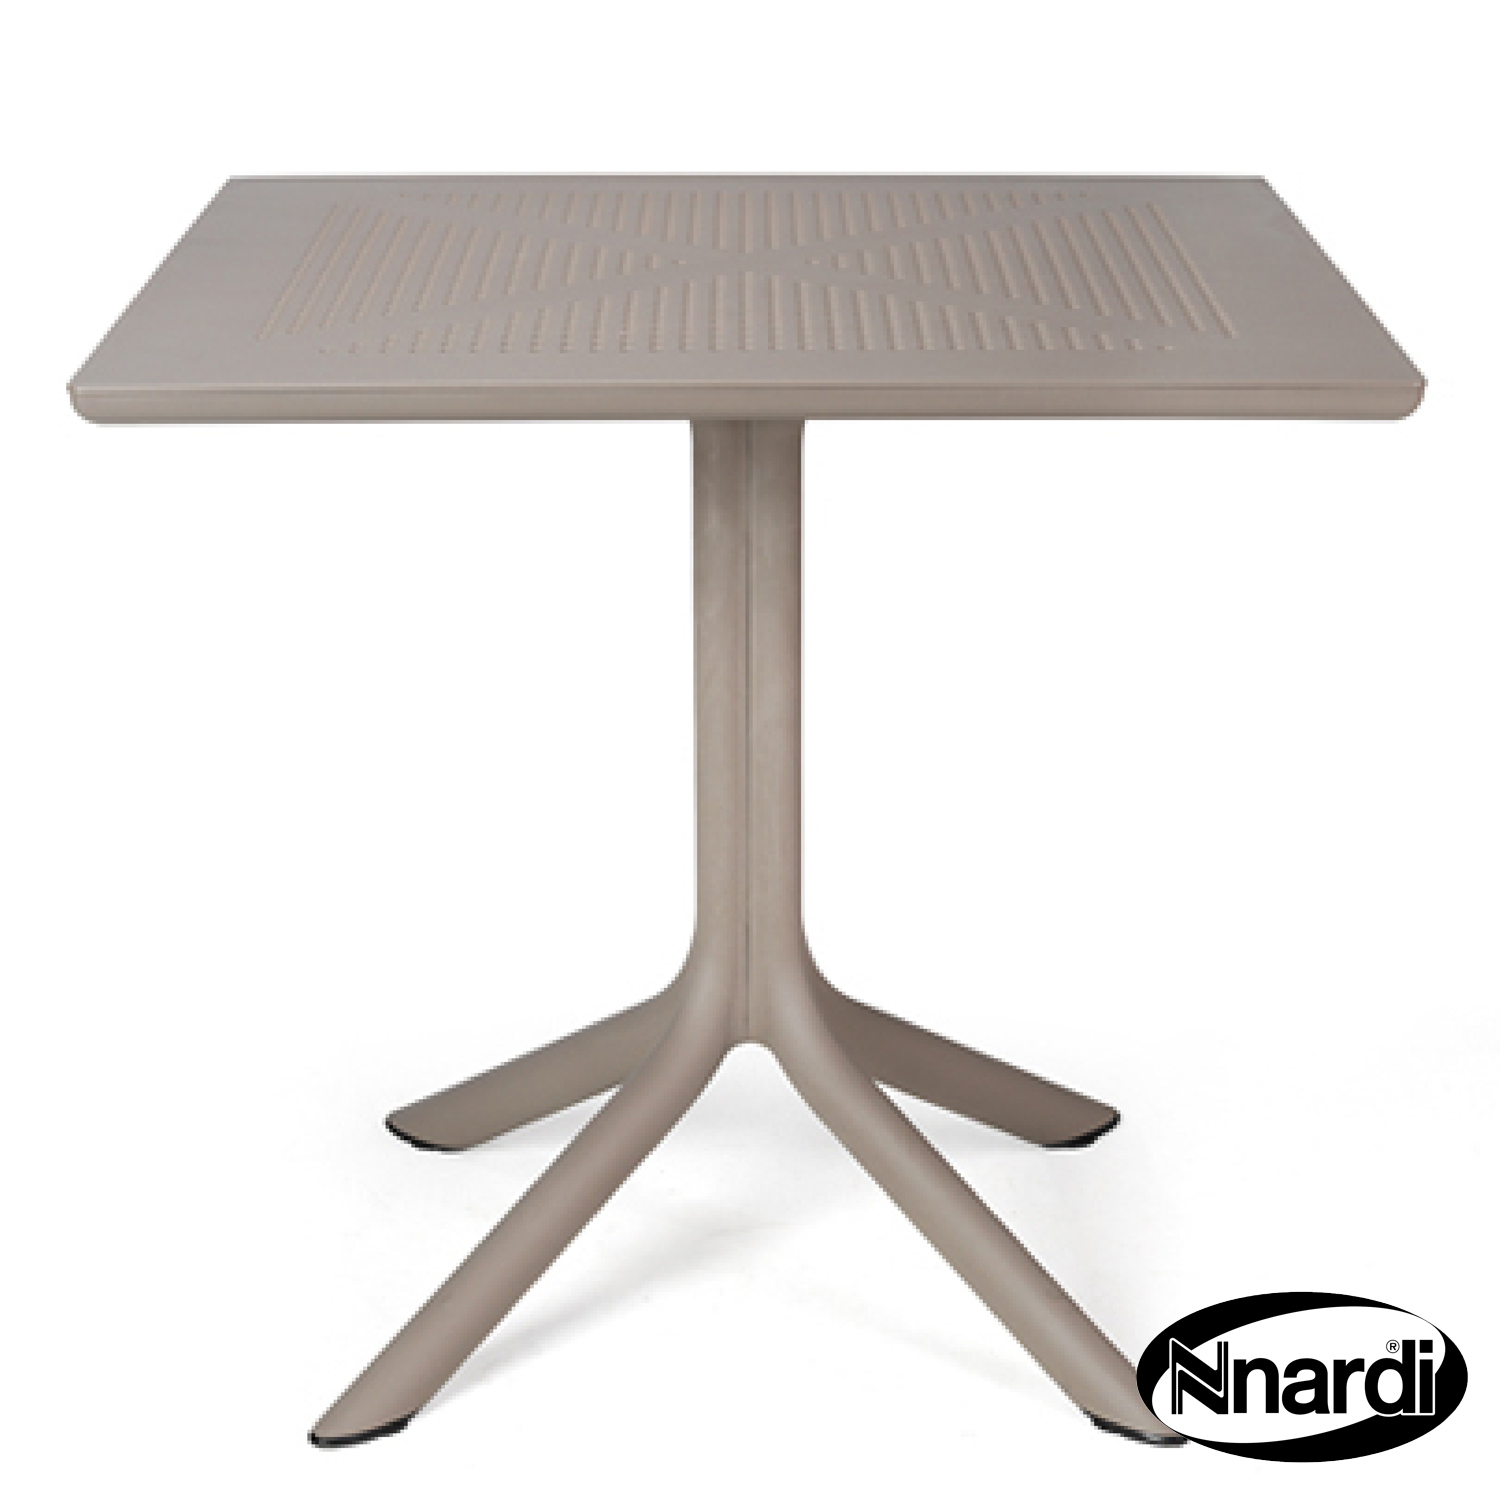 https://www.firstfurniture.co.uk/pub/media/catalog/product/n/d/nd-115_clip_table_turtle_dove.jpg